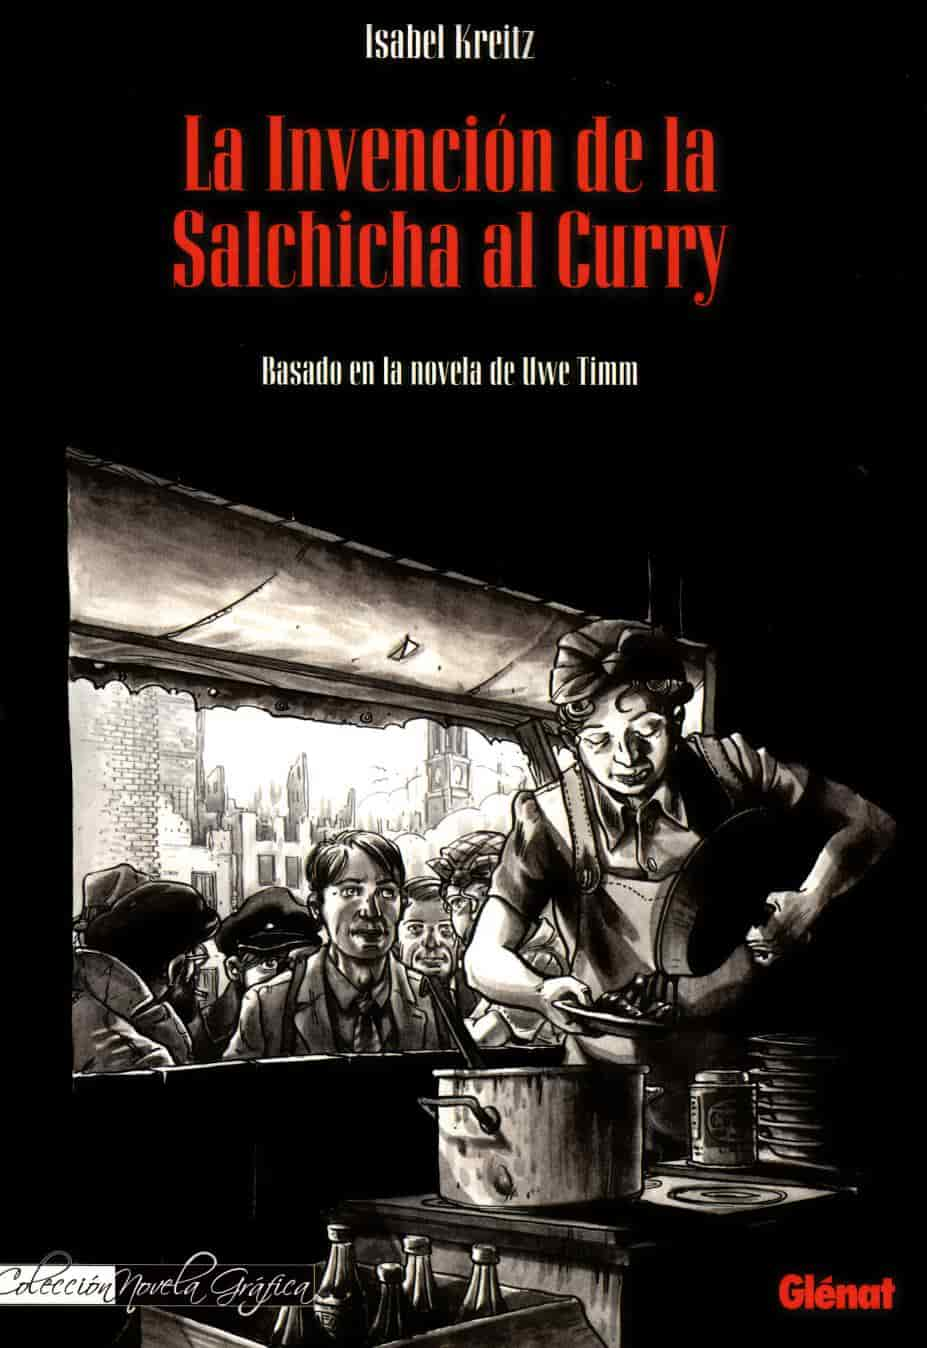 Salchicha al curry